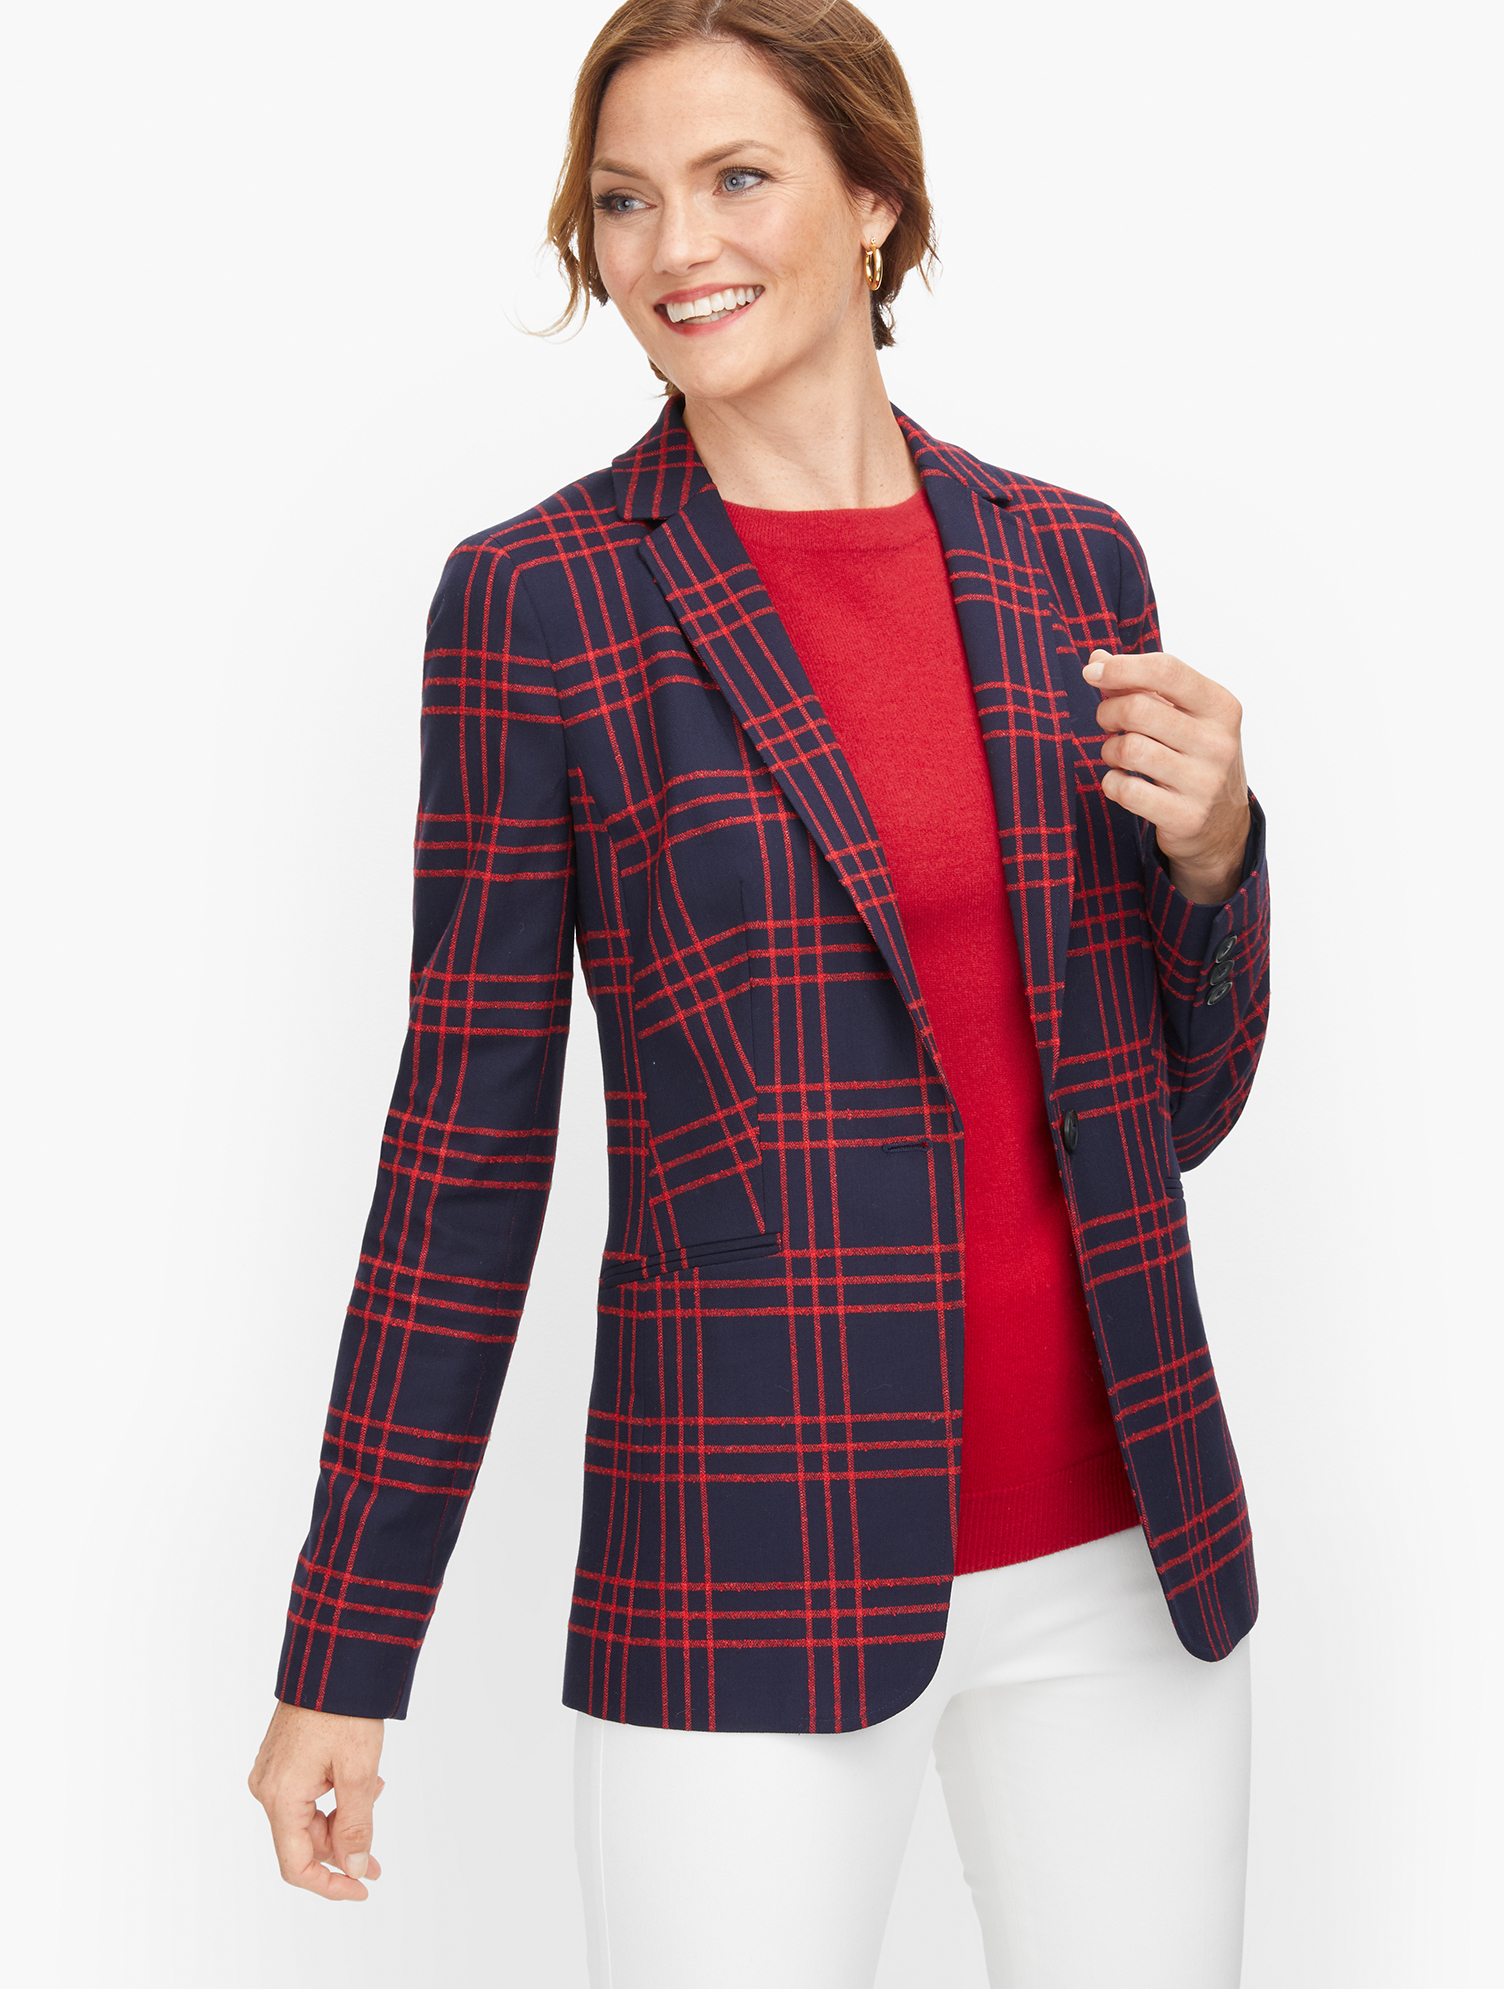 1940s Style Coats and Jackets for Sale Bouclé Windowpane Blazer - Red - 16 Talbots $129.99 AT vintagedancer.com